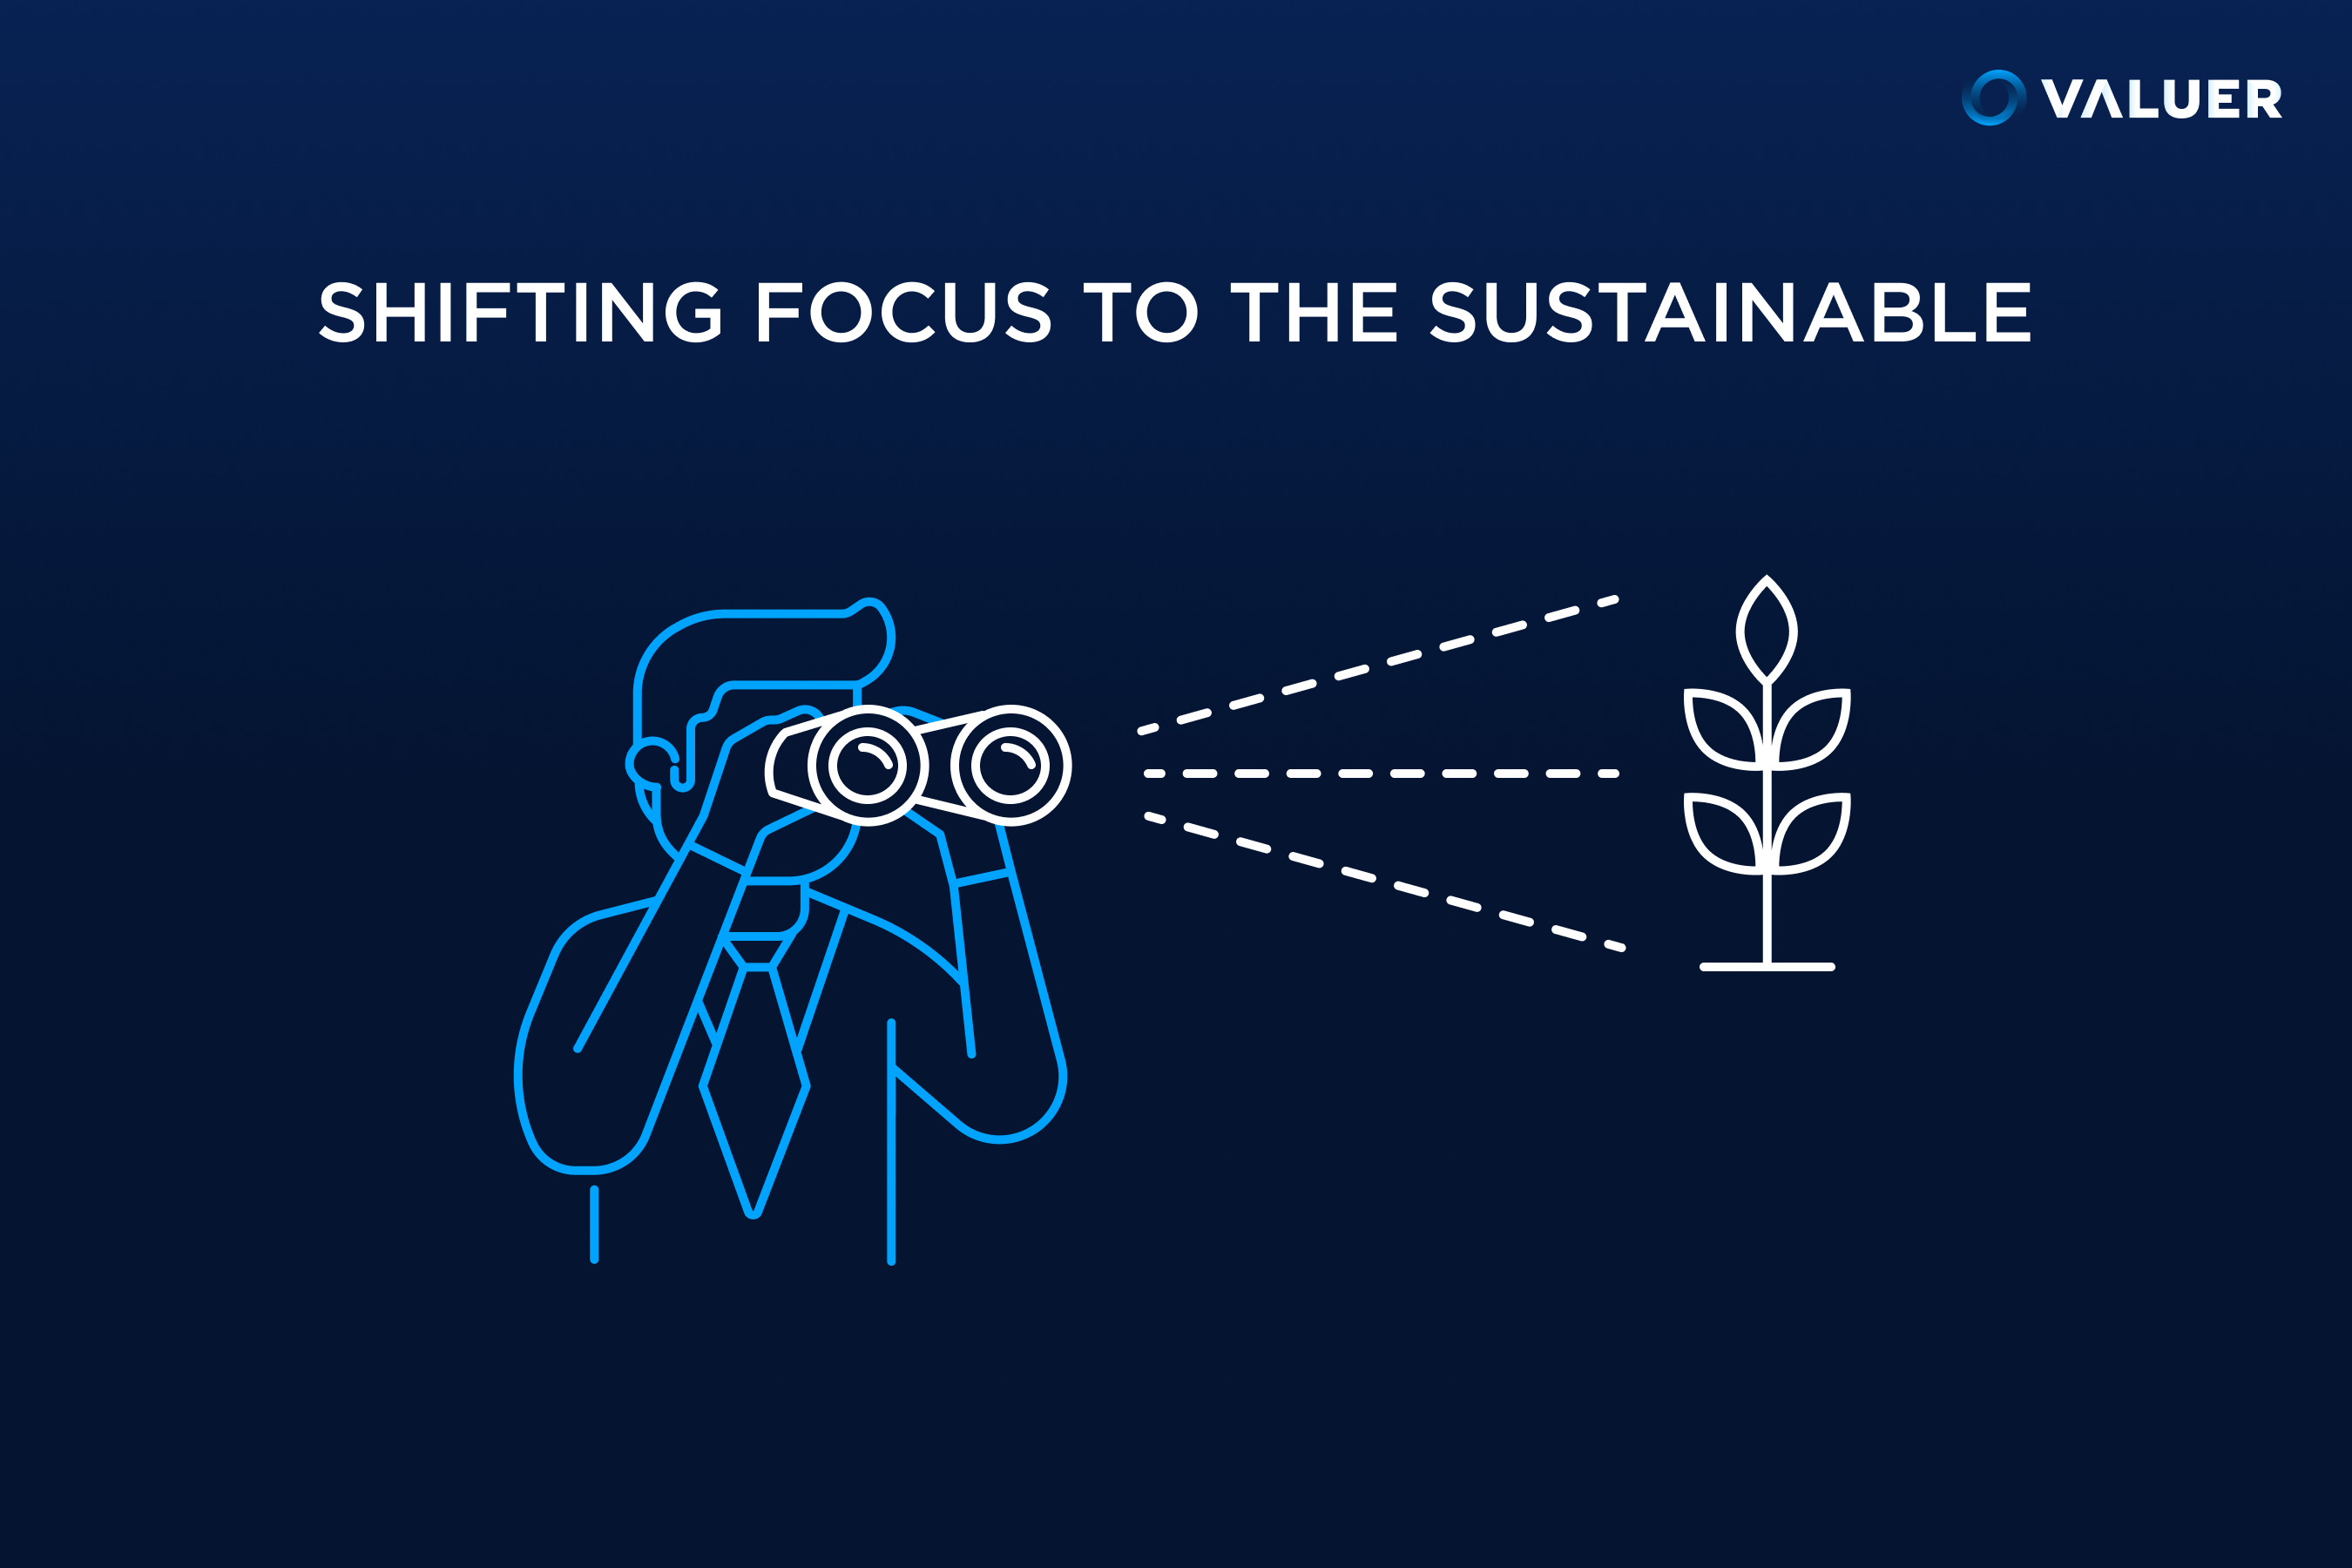 Shifting Focus to the Sustainable